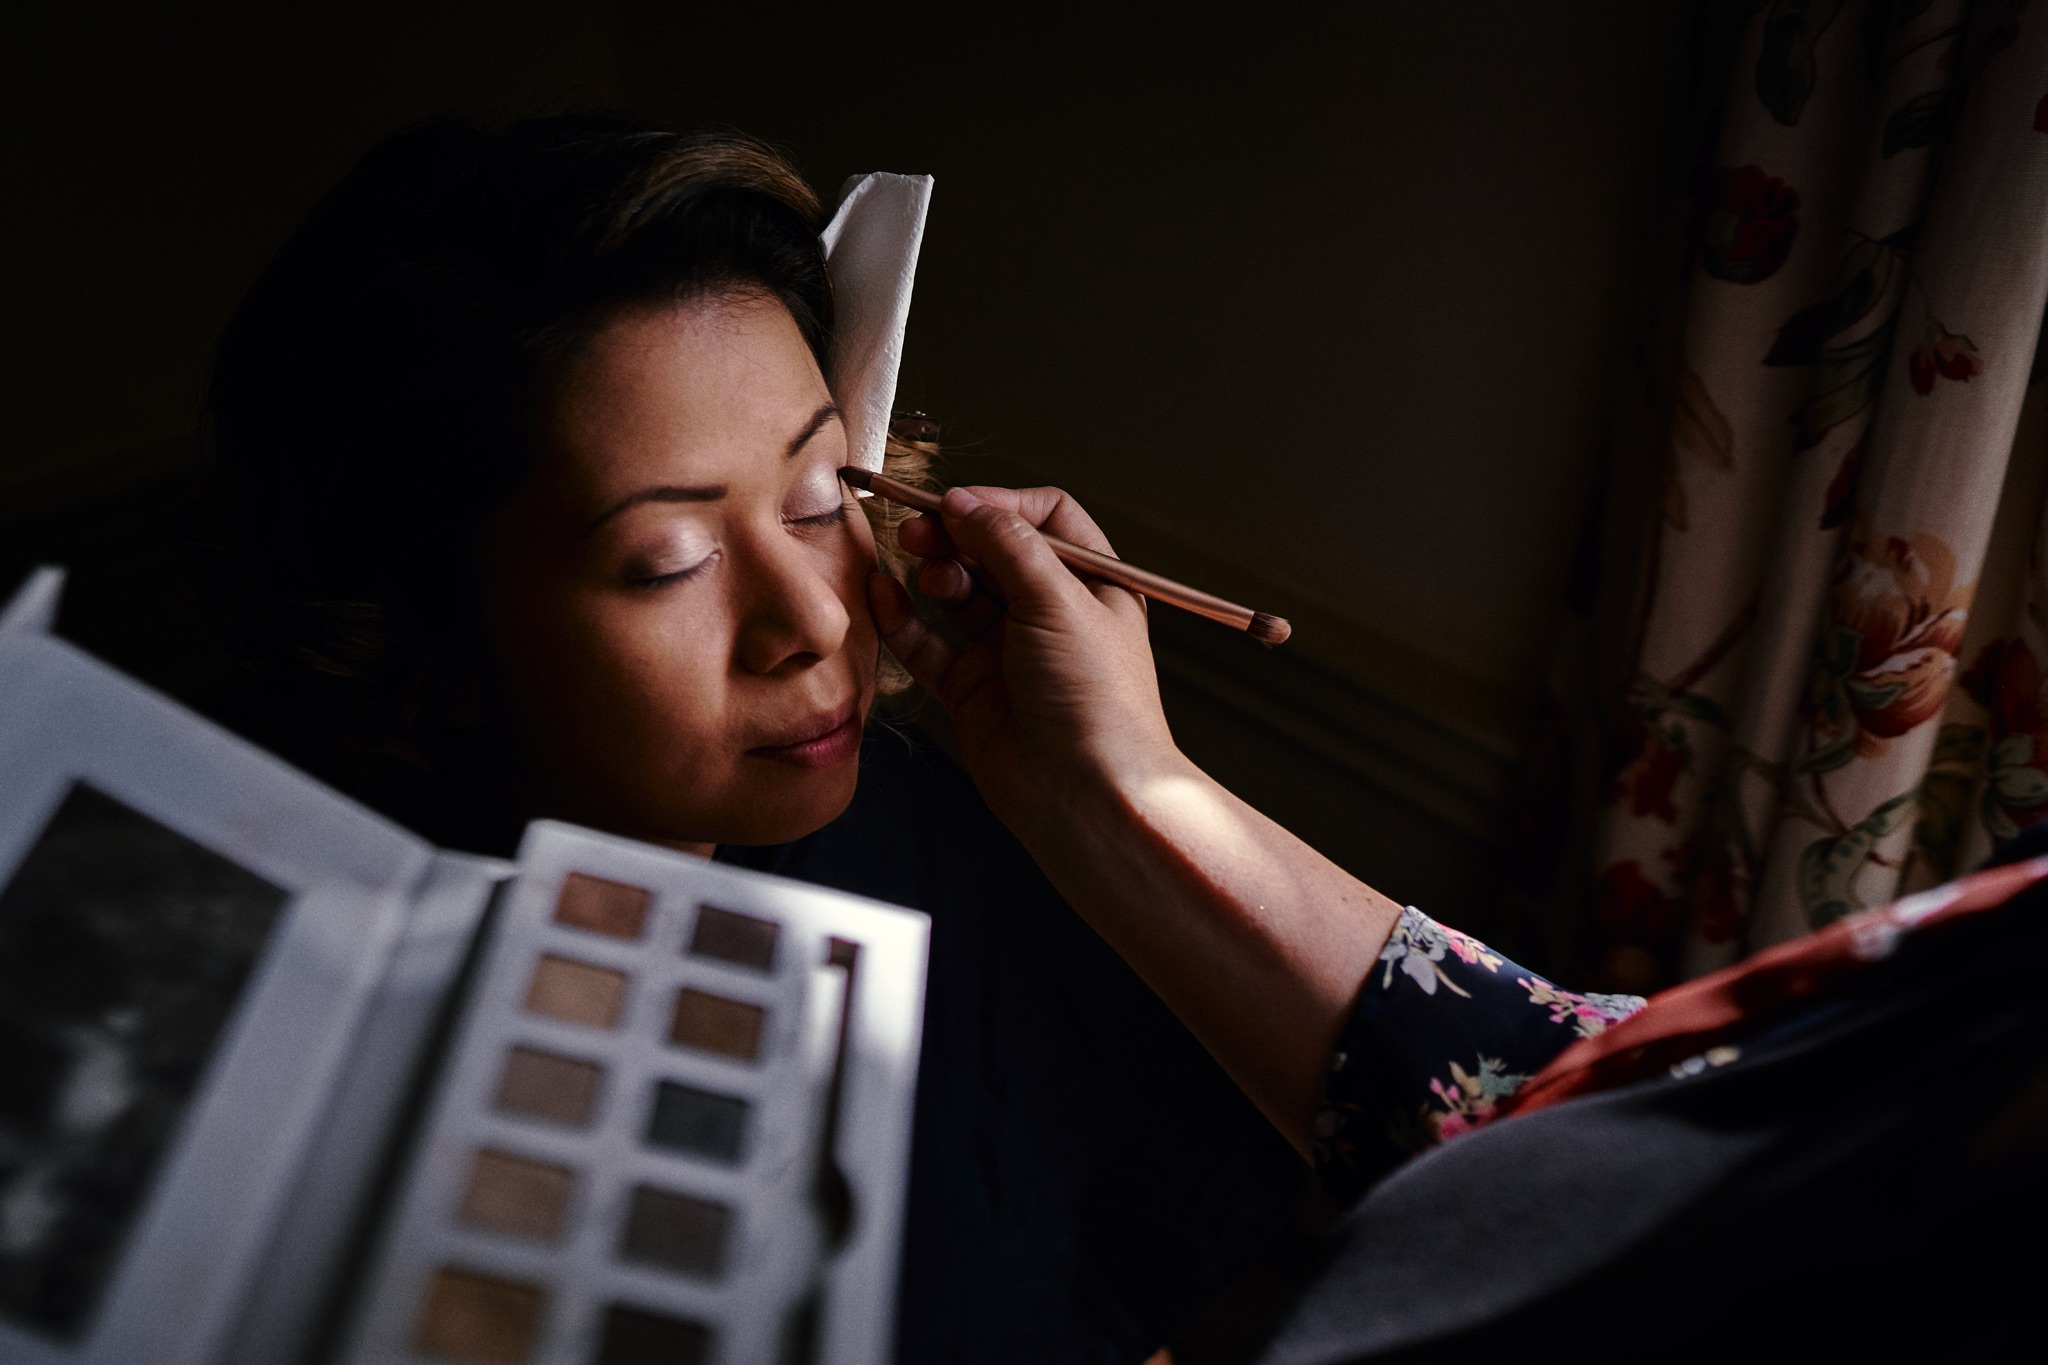 Bride having her makeup done during bridal prep at Walcot Hall Hotel, Shropshire.